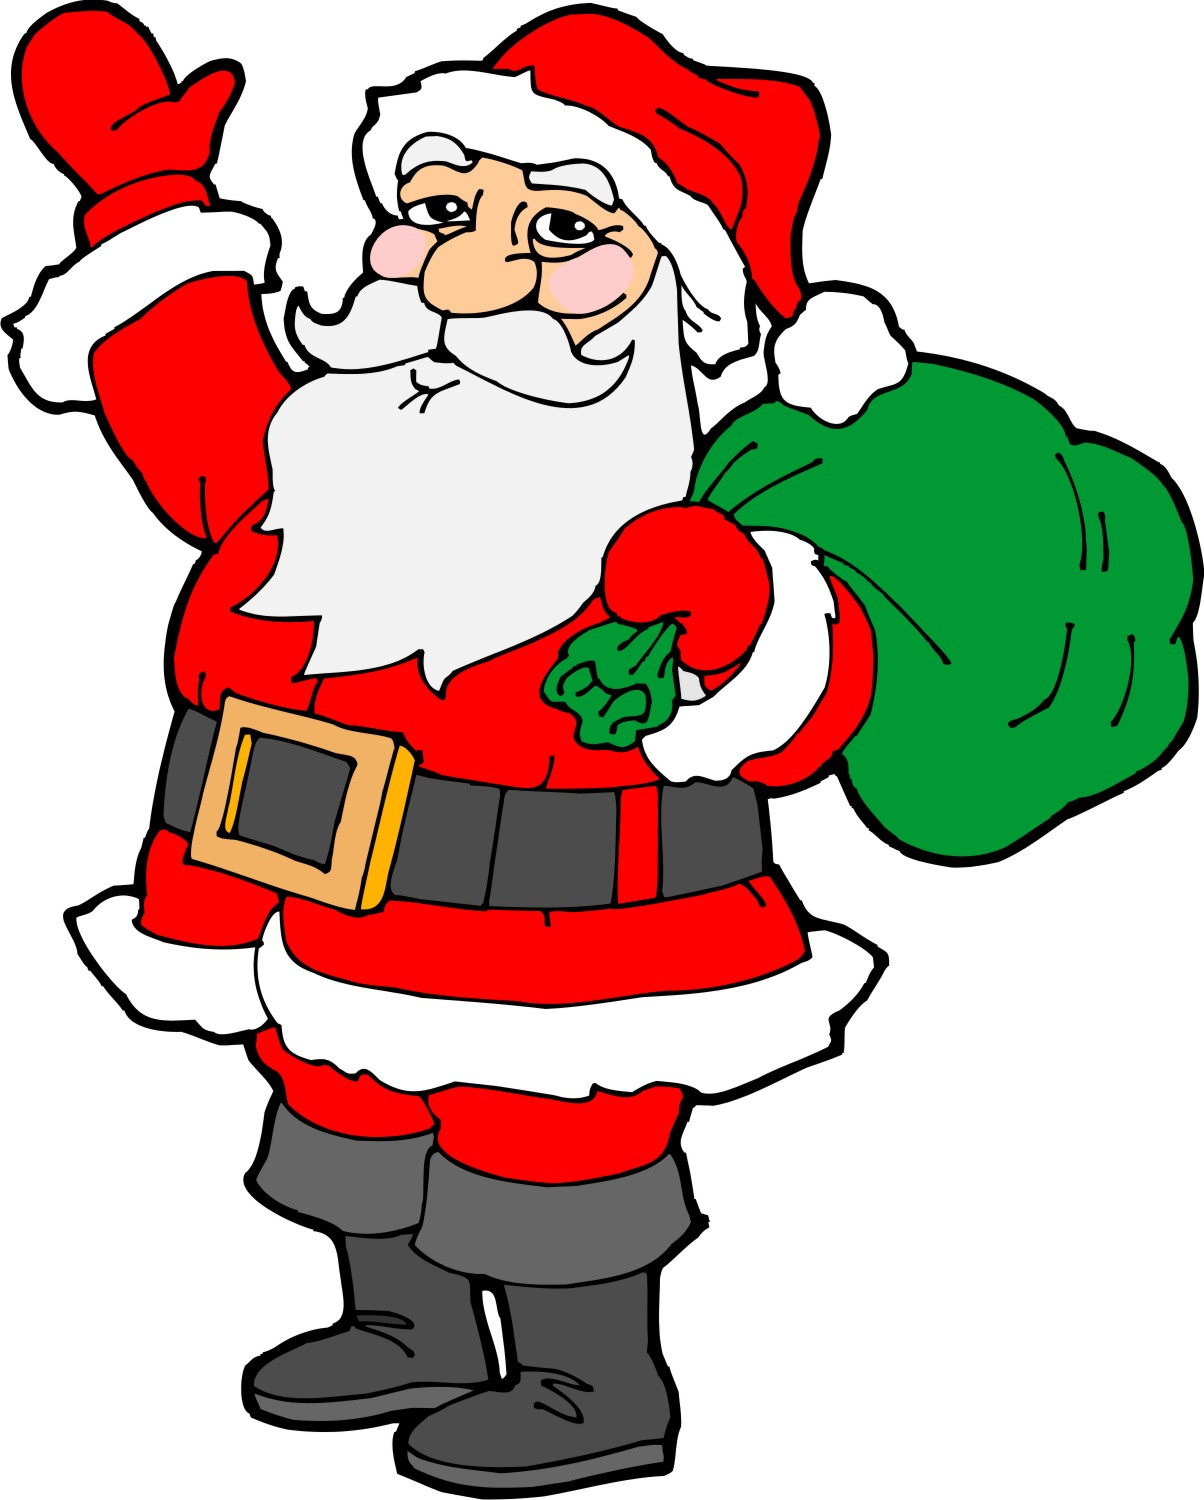 Drawn santa fun christmas Creative Christmas for Decorations Drawings